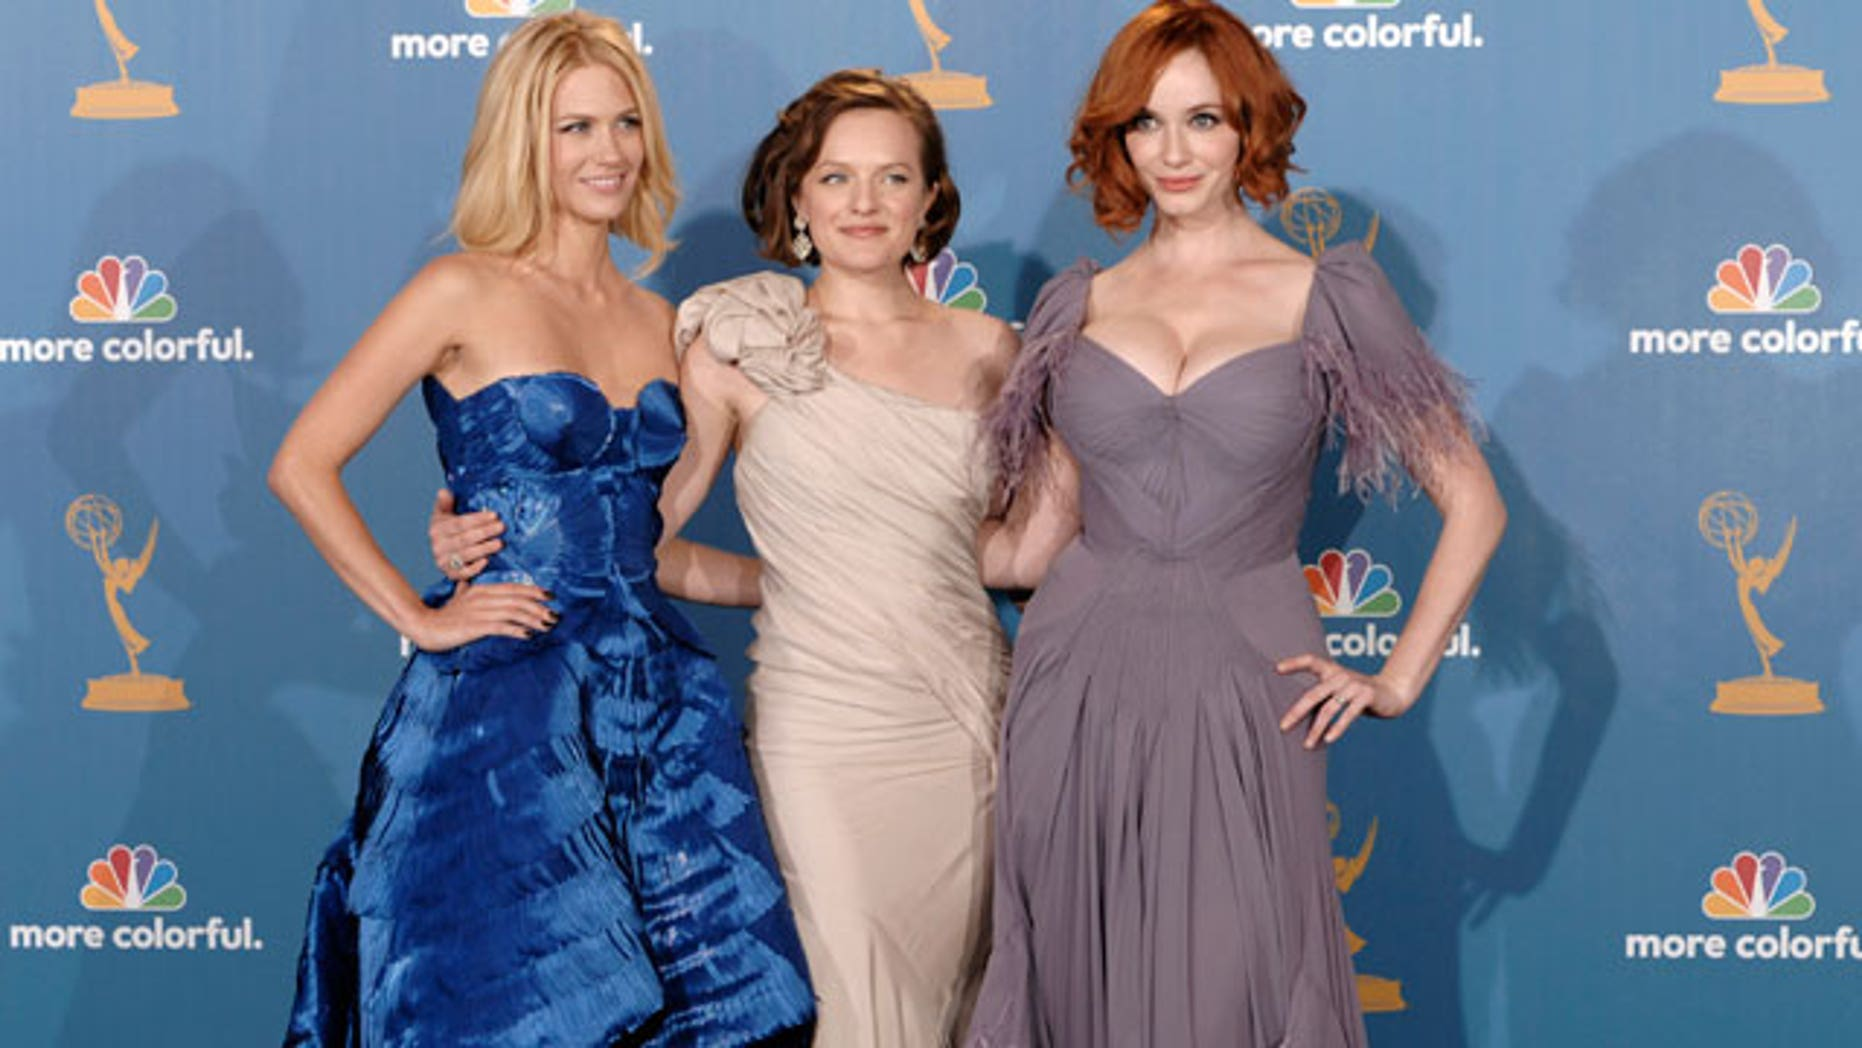 Aug. 29: January Jones, Elisabeth Moss and Christina Hendricks pose backstage at the Emmy Awards.  January Jones is the face of Versace's new ad campaign.